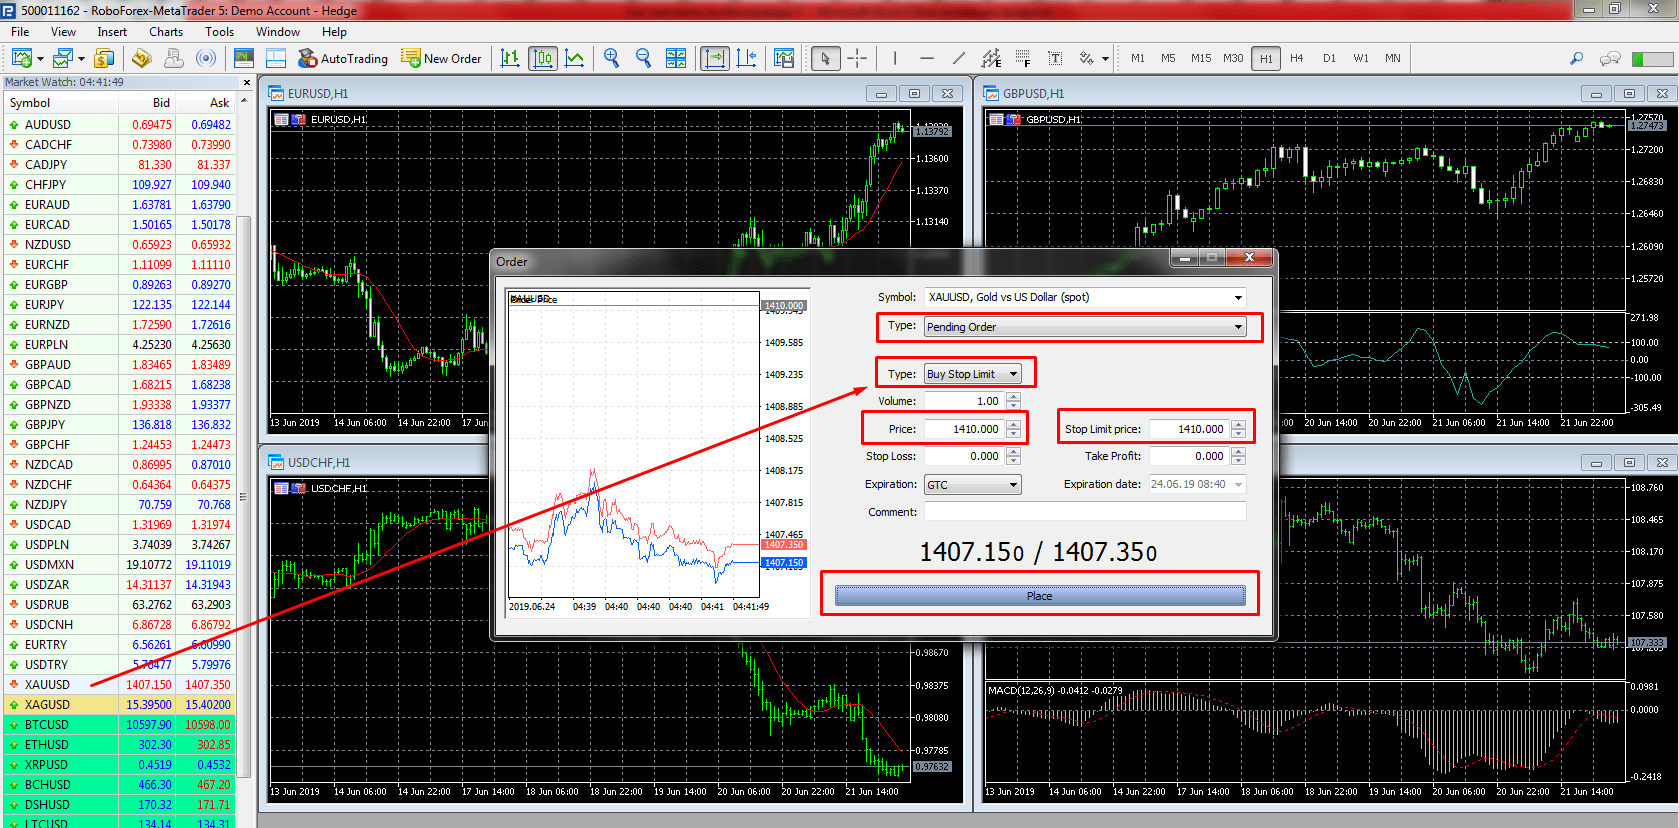 MetaTrader 5: Manuale completo in italiano